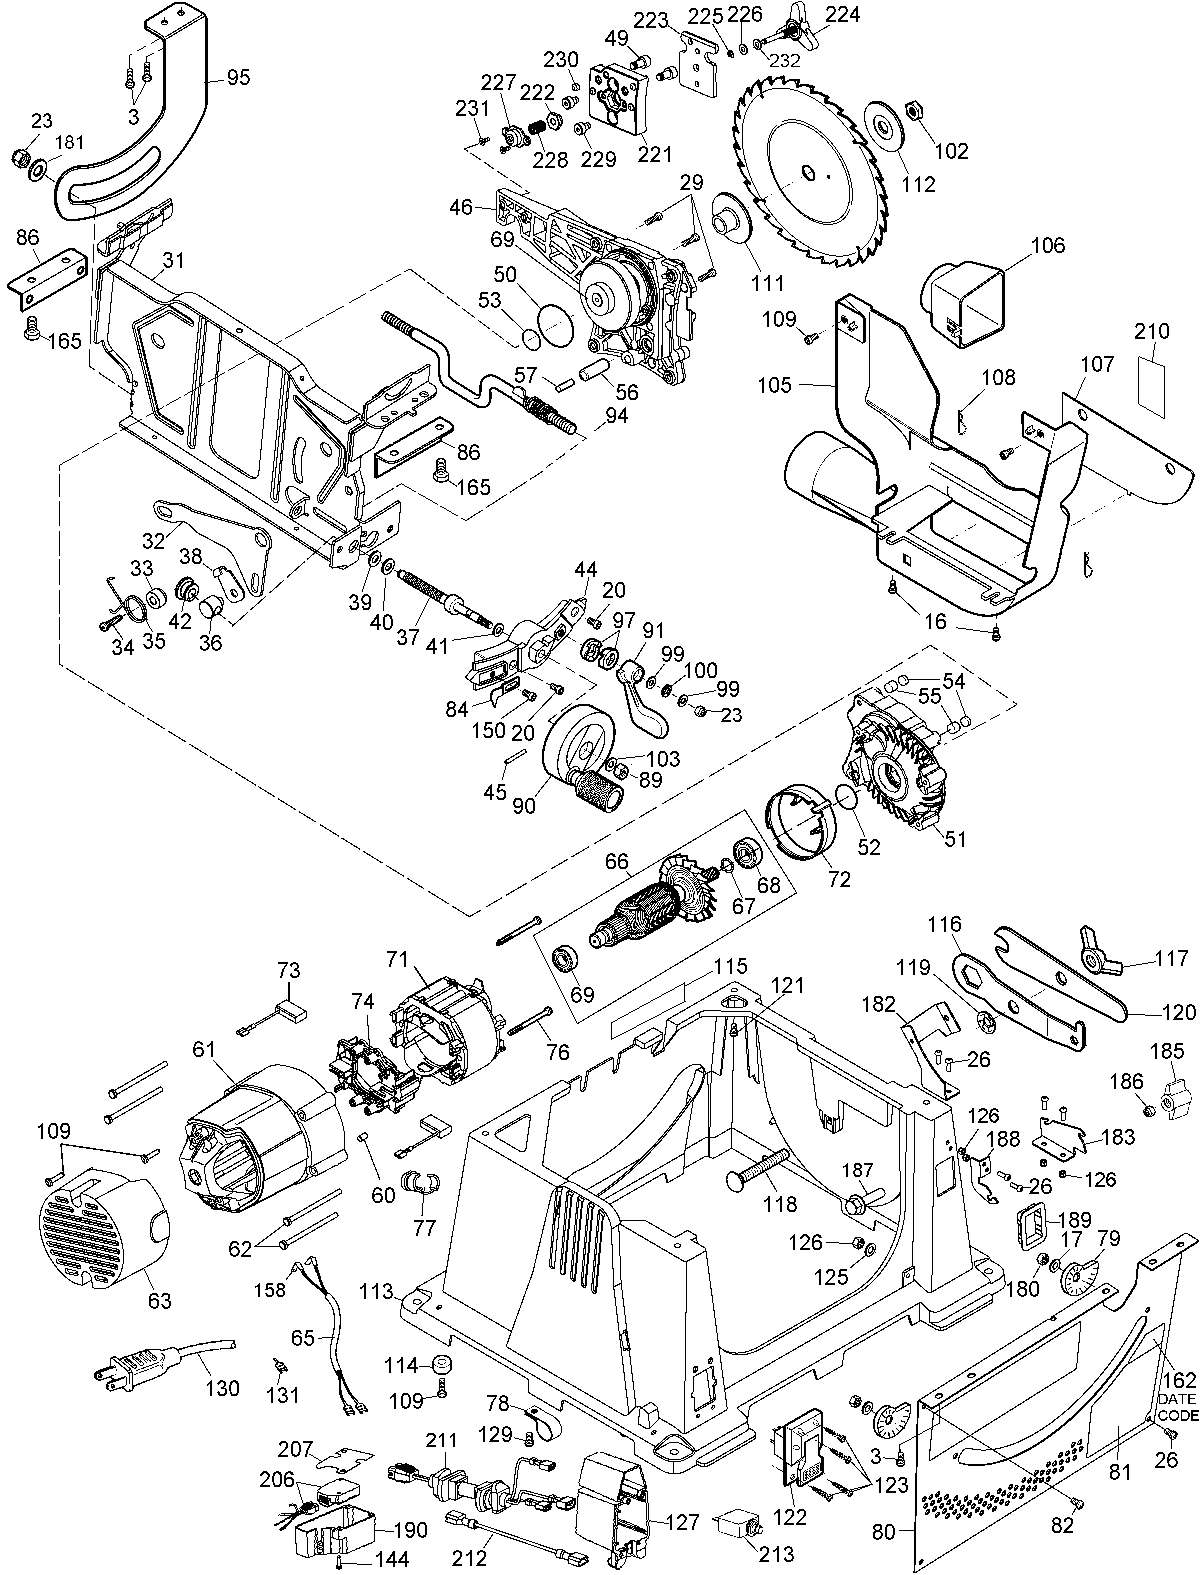 Parts for dw744x type 6 powerhouse distributing tool diagram greentooth Image collections